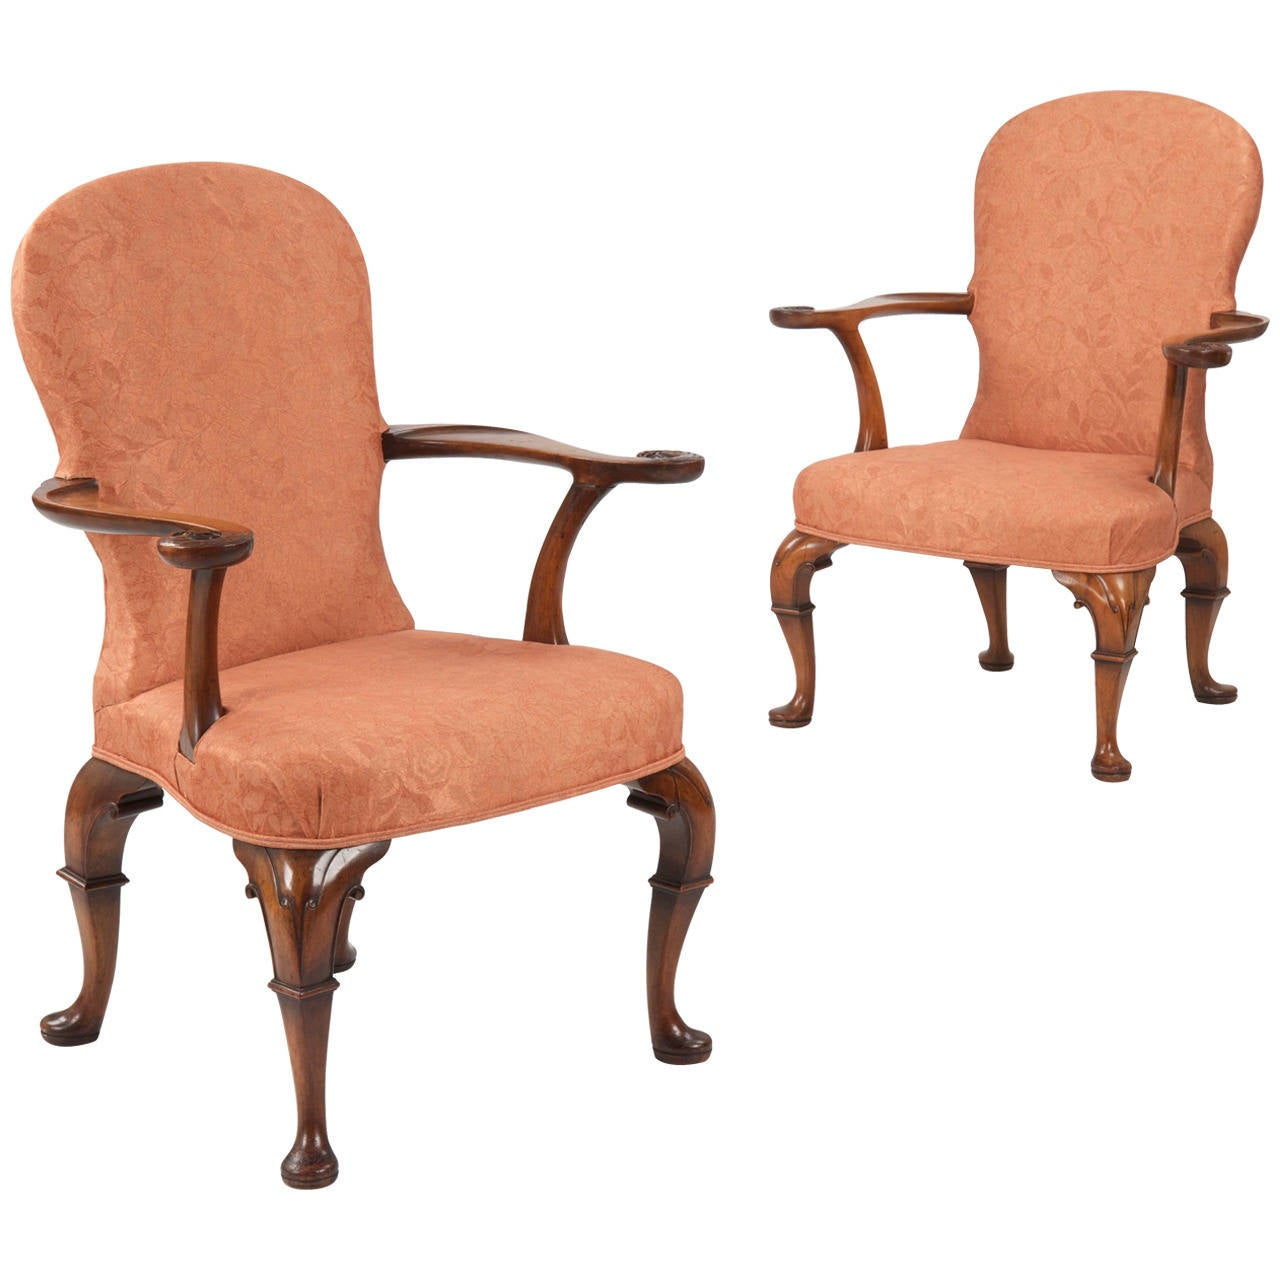 Pair of English George II Style Antique Arm Chairs w/ Eagle Carvings 1 - Pair Of English George II Style Antique Arm Chairs W/ Eagle